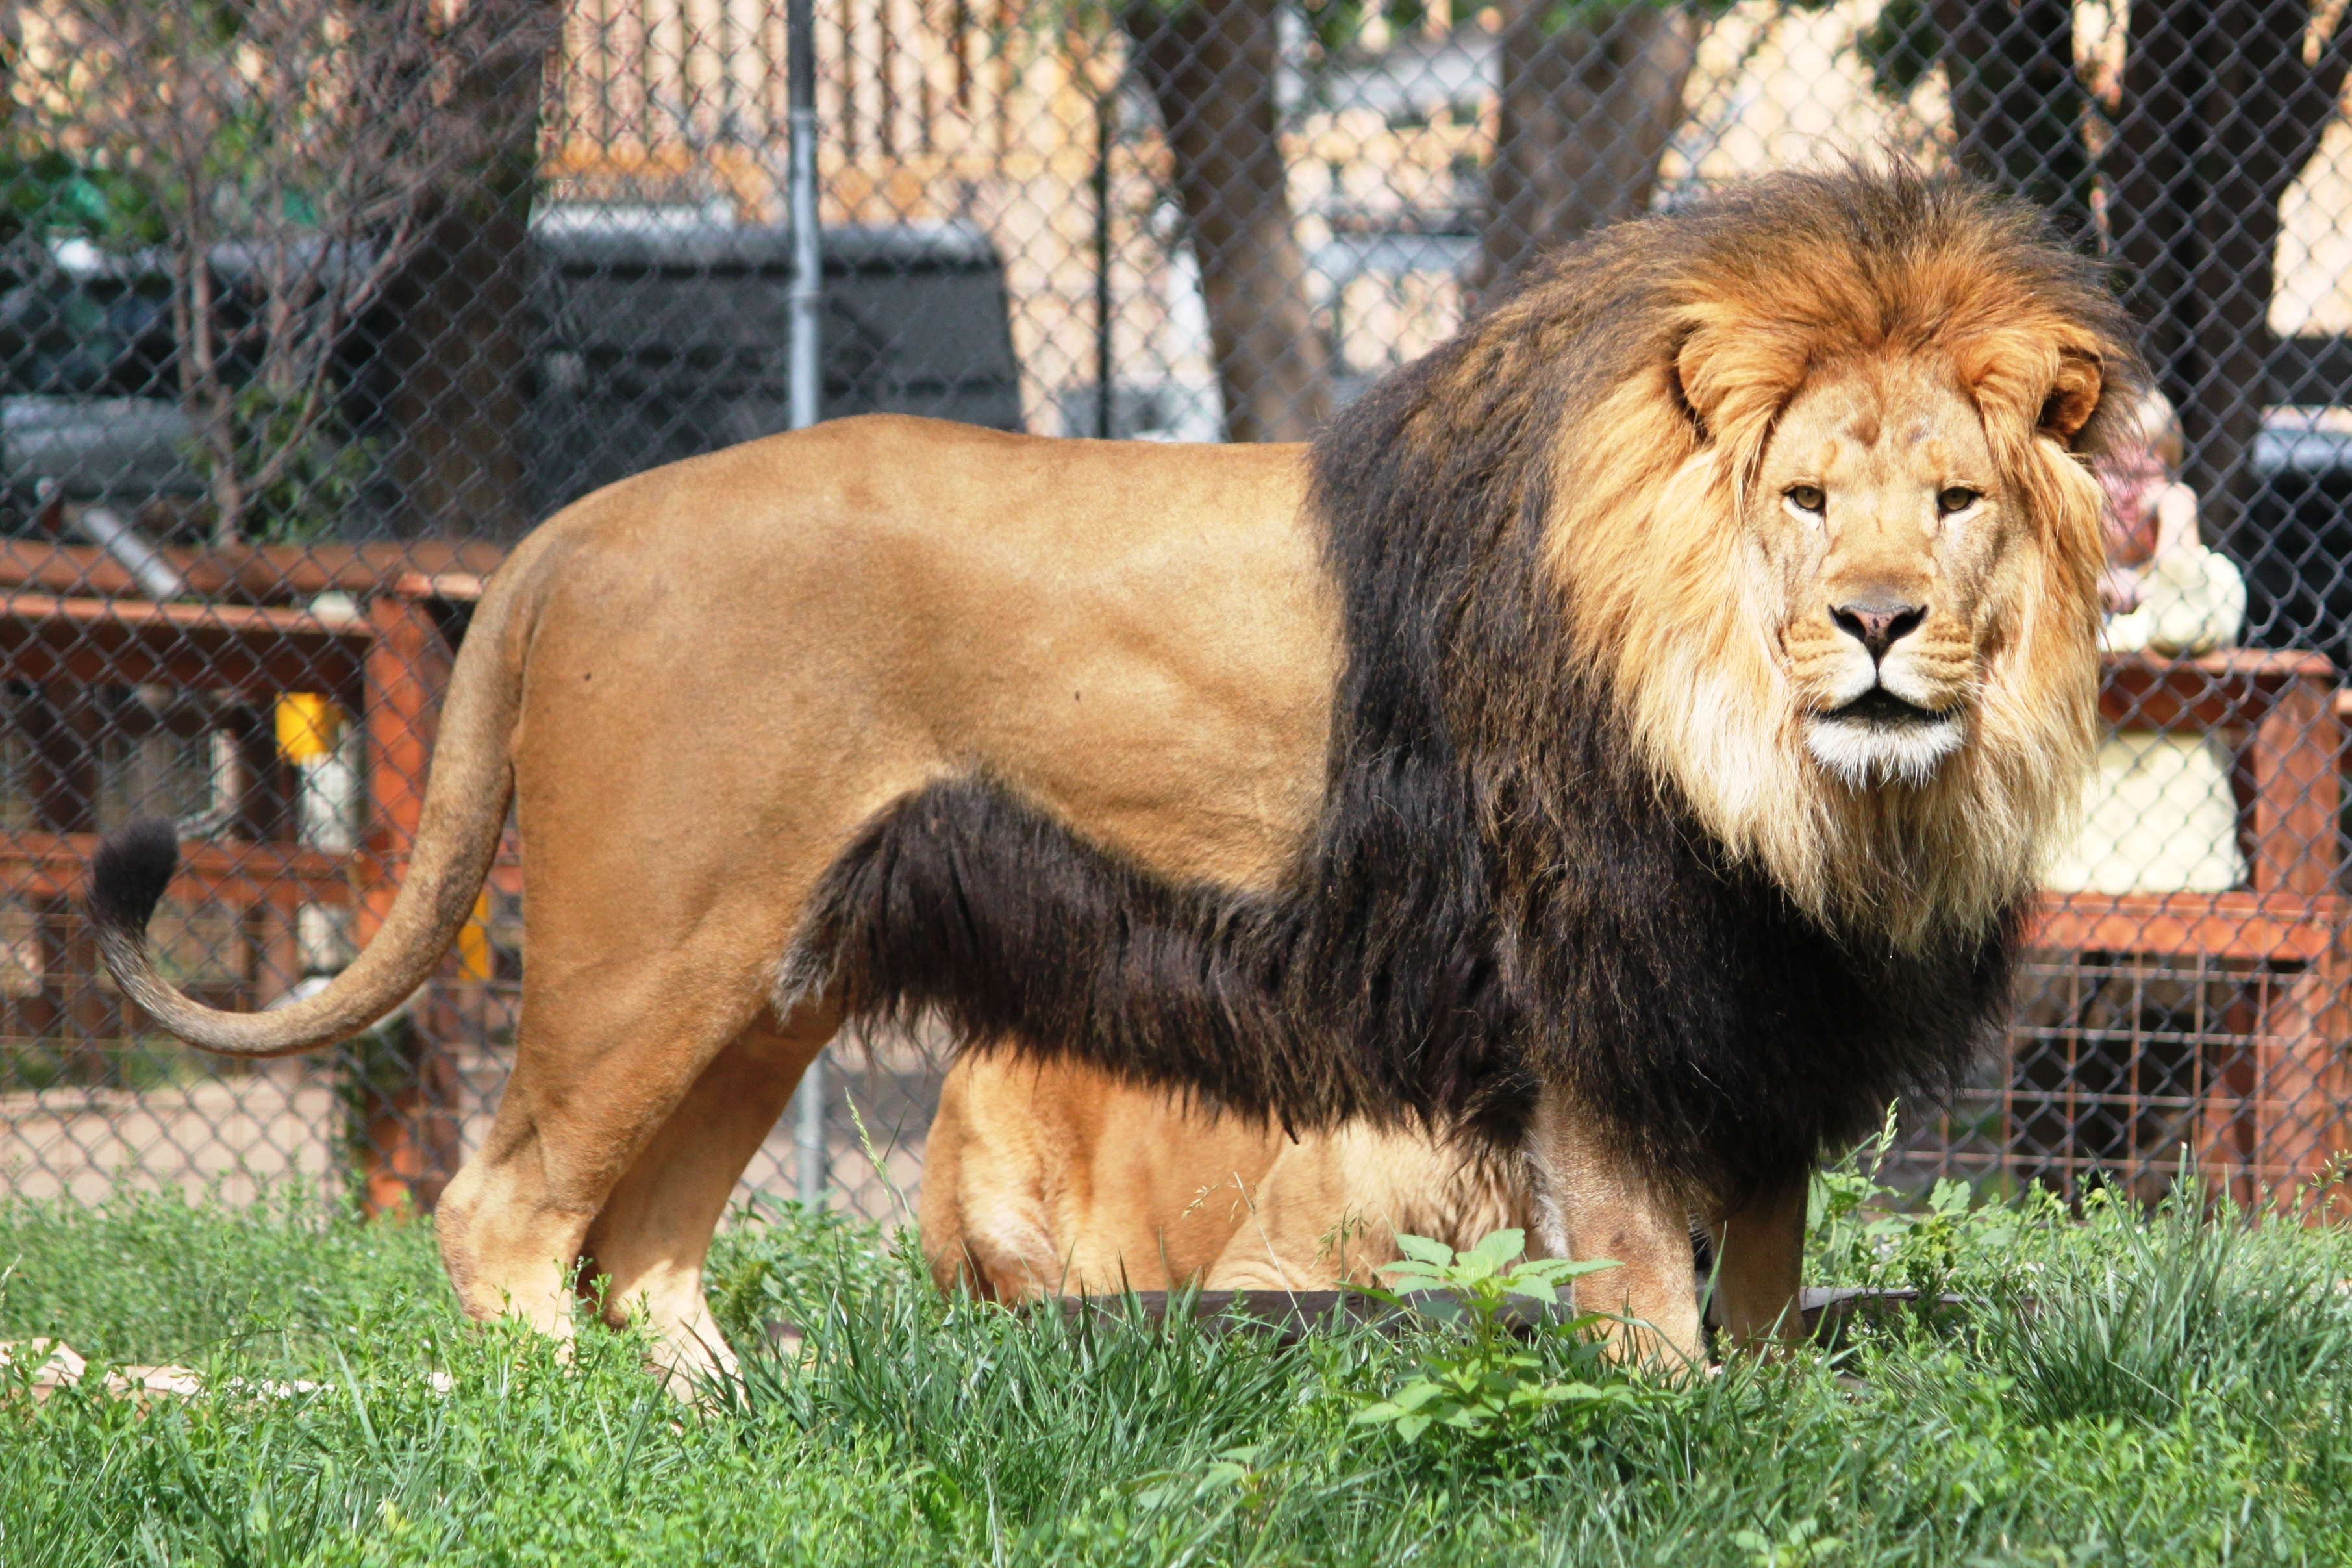 Side view of male African lion in a zoo exhibit